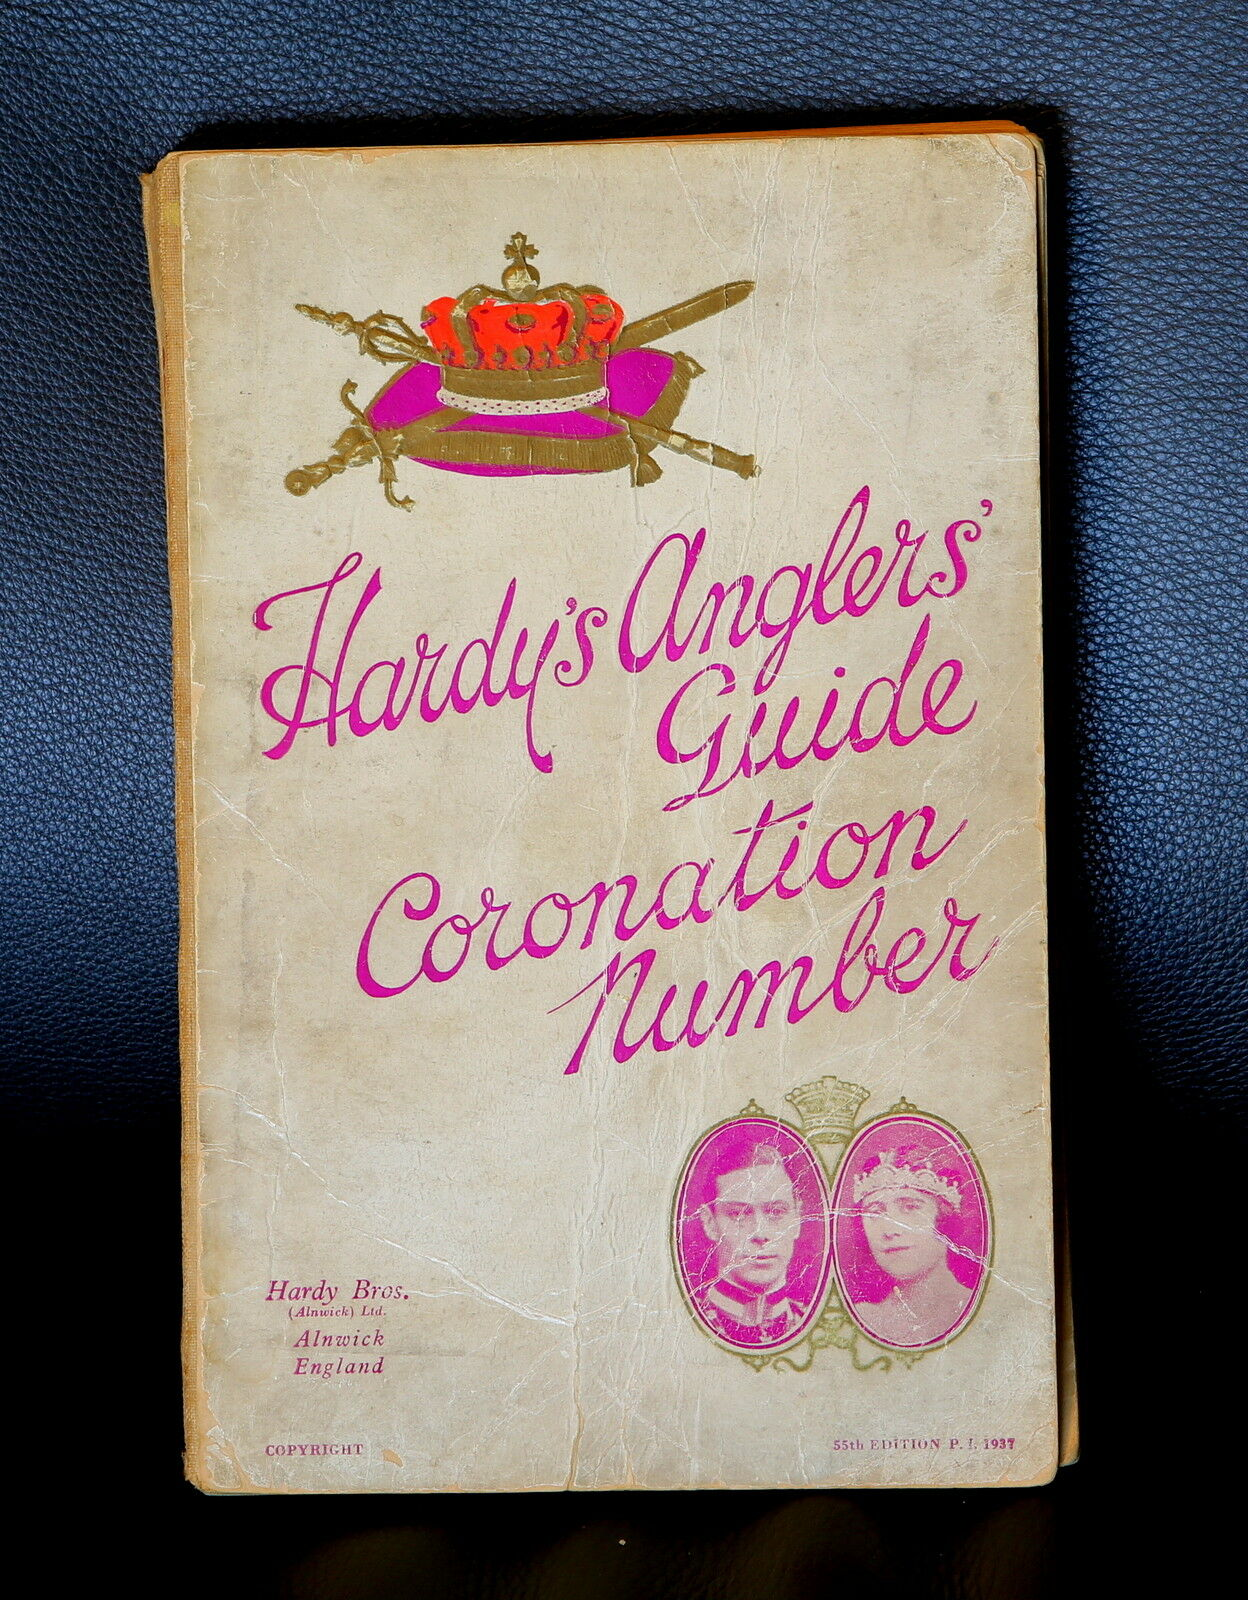 Nice HARDY's ANGLERS' GUIDE (catalogue)  - THE CgoldNATION NUMBER 1937 - good